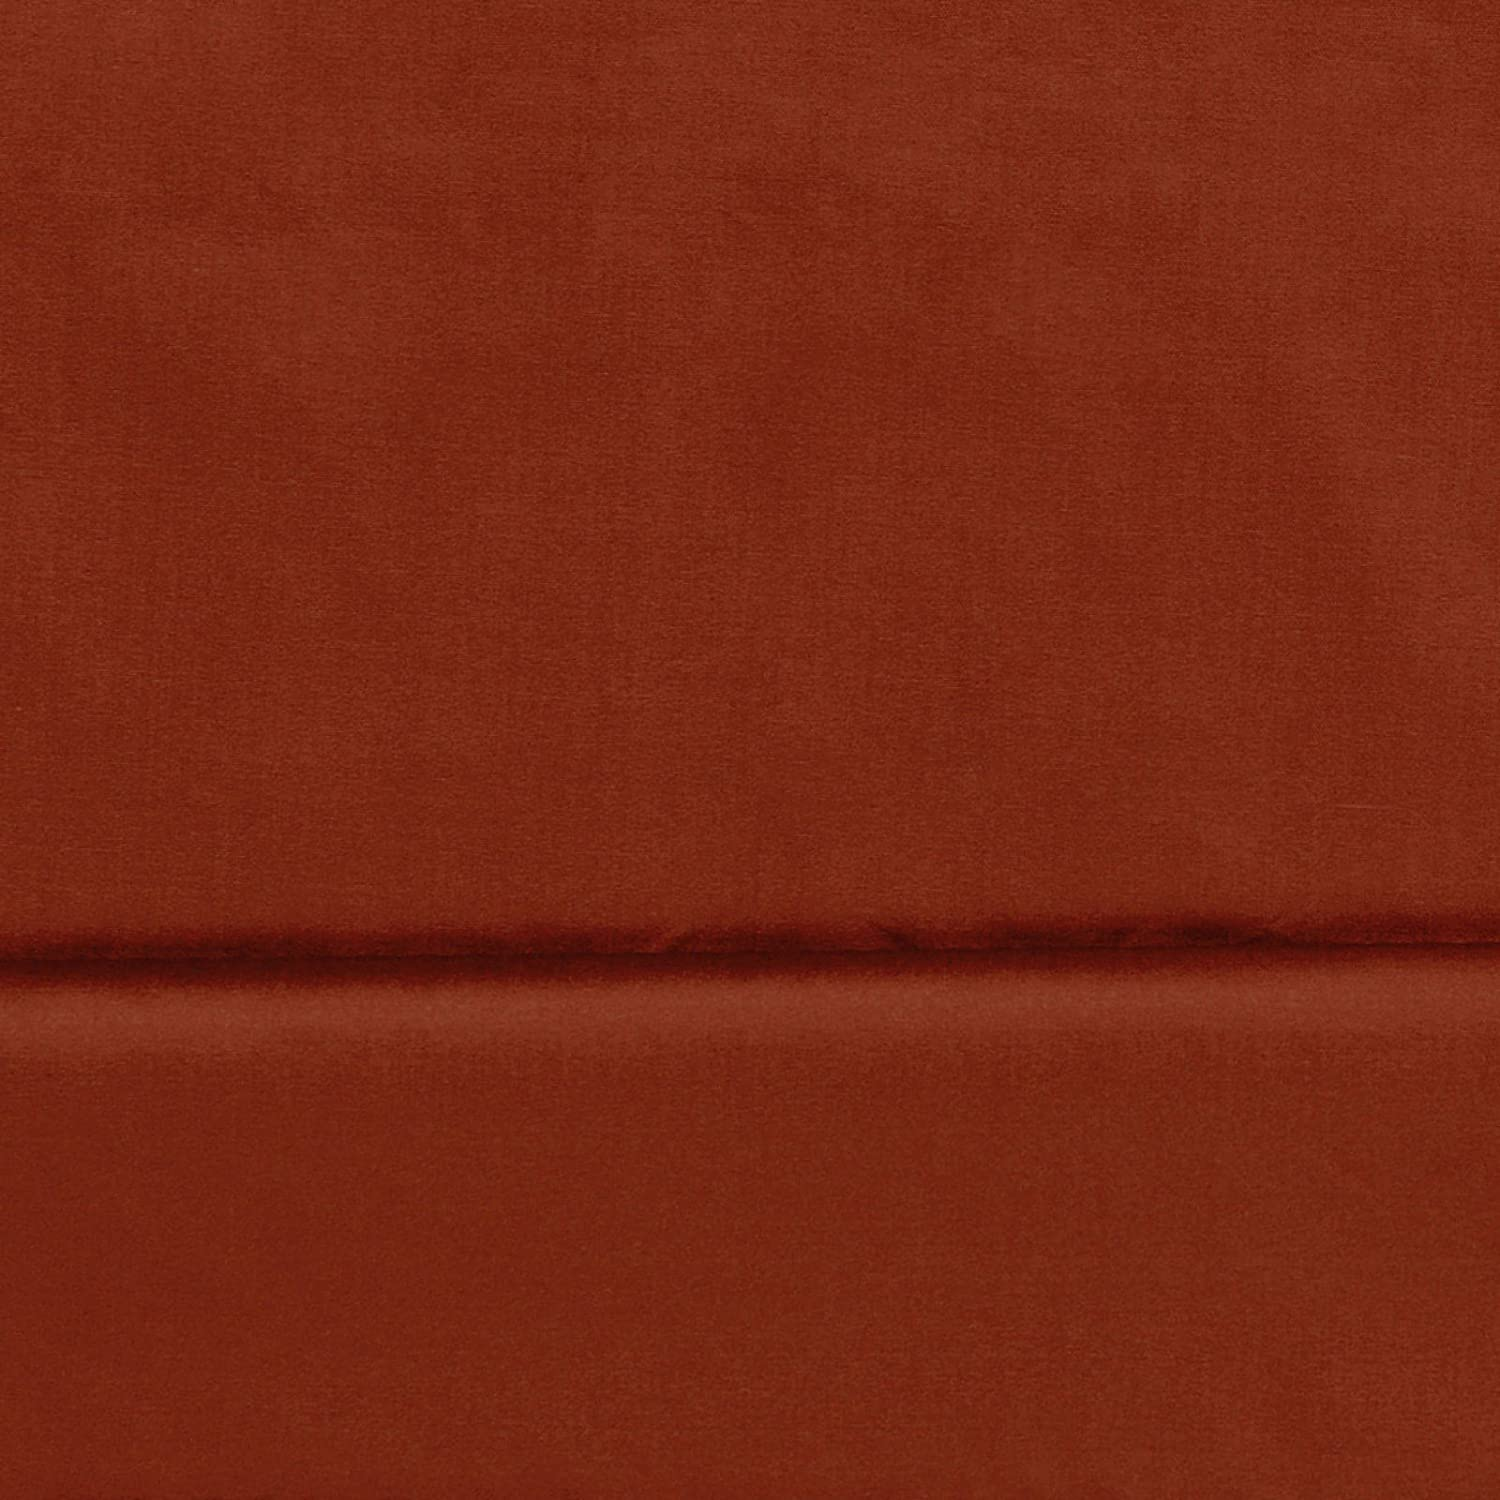 Amazon Com Rust Orange Red Upholstery Fabric By The Yard